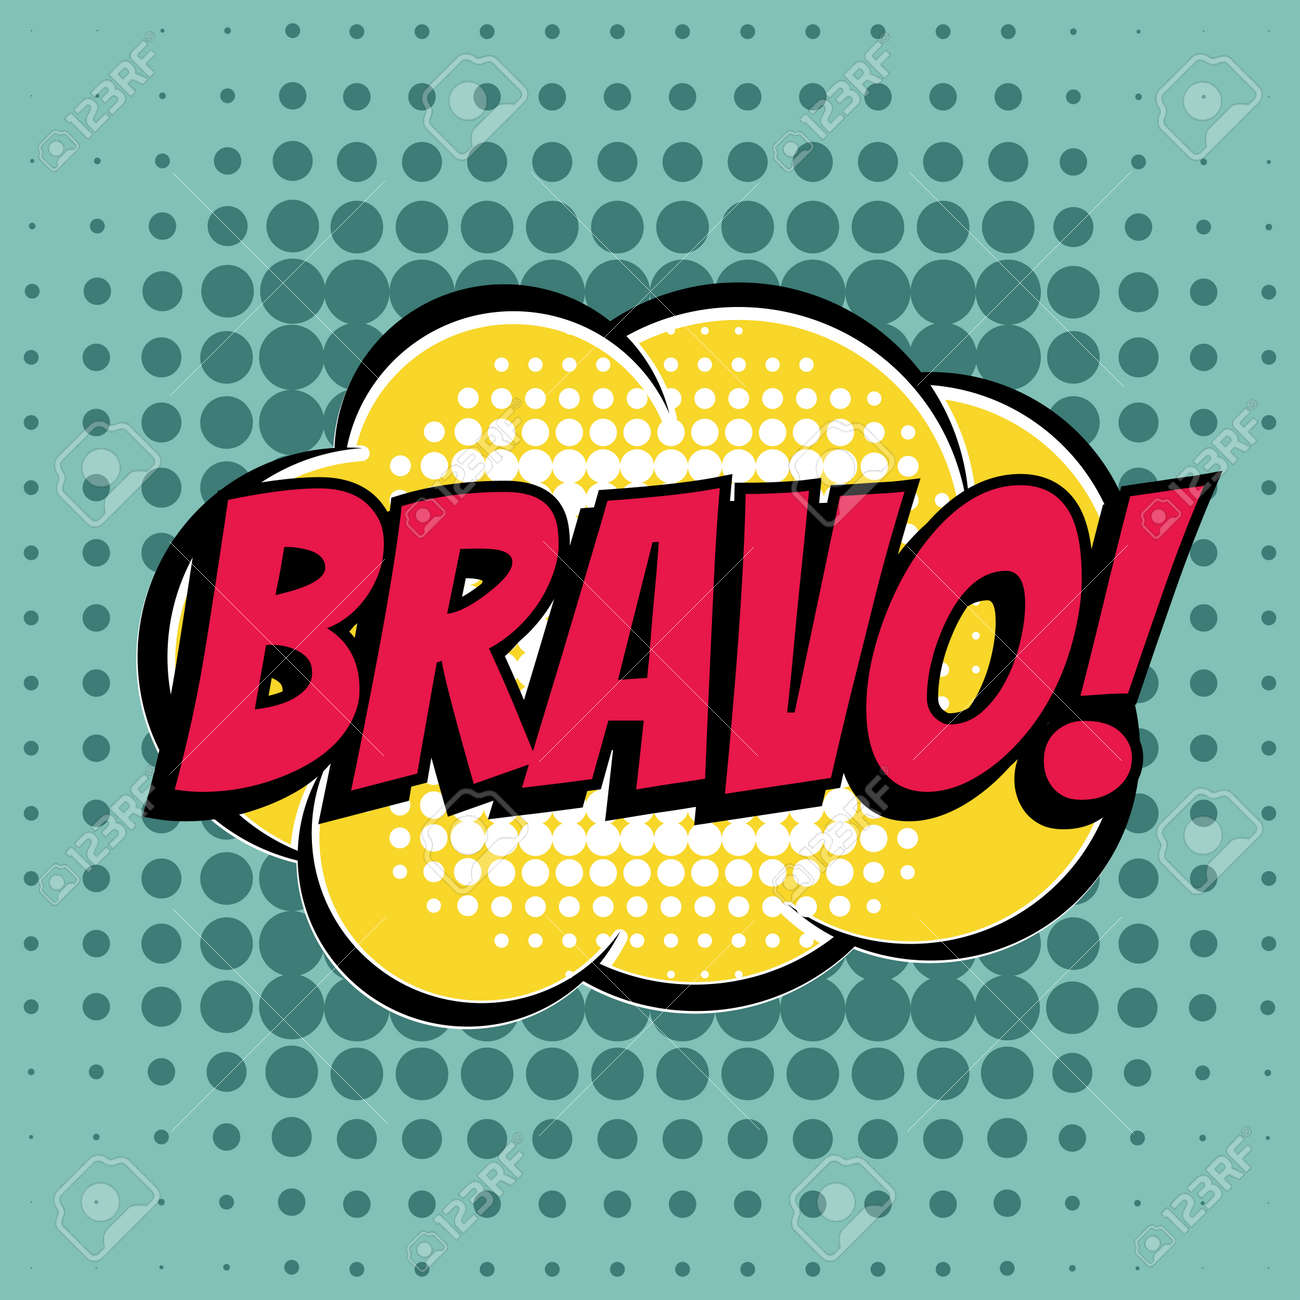 Image Bravo bravo comic book bubble text retro style royalty free cliparts